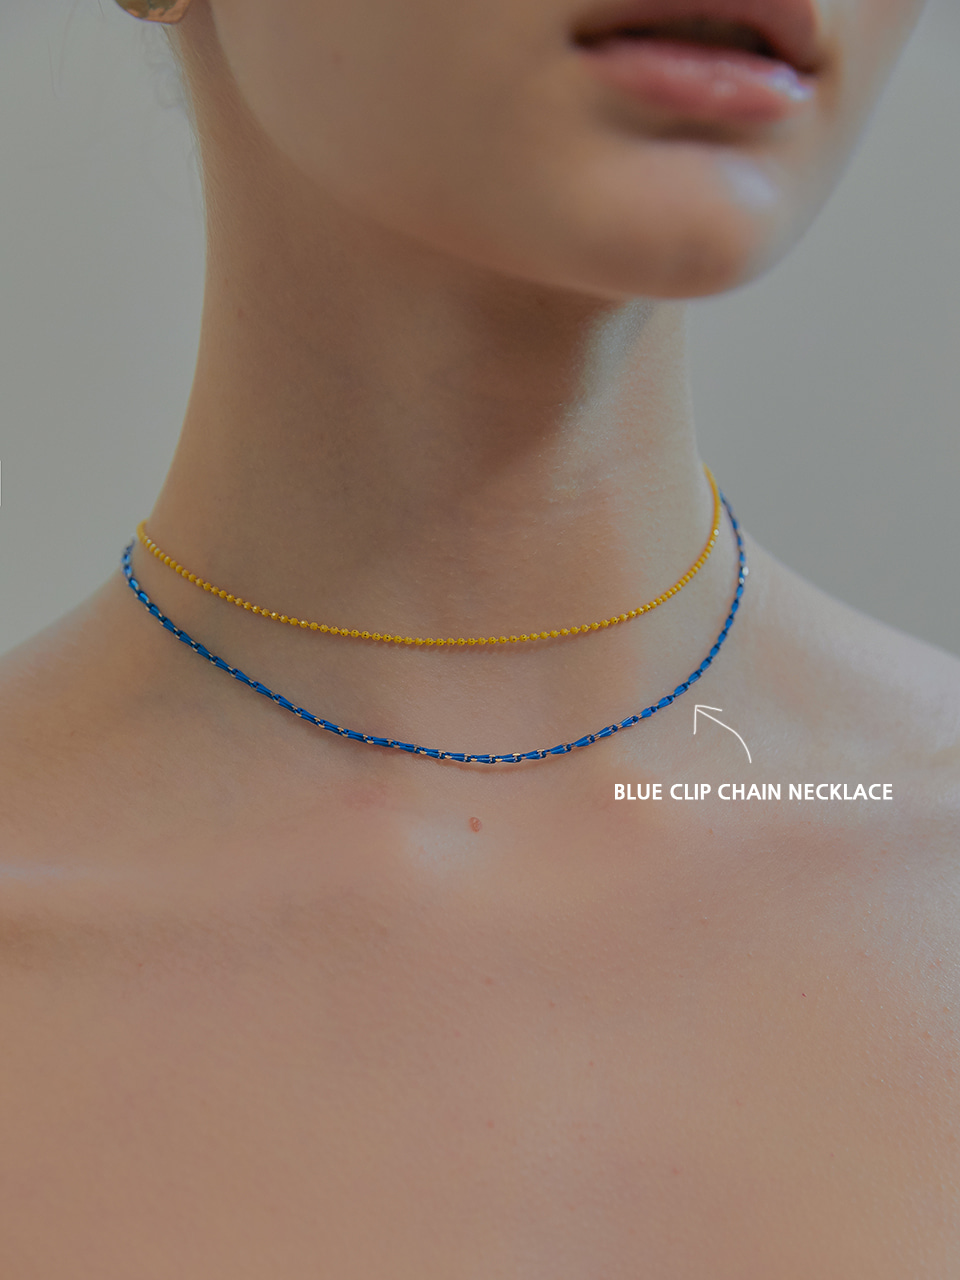 blue clip chain necklace (choker)